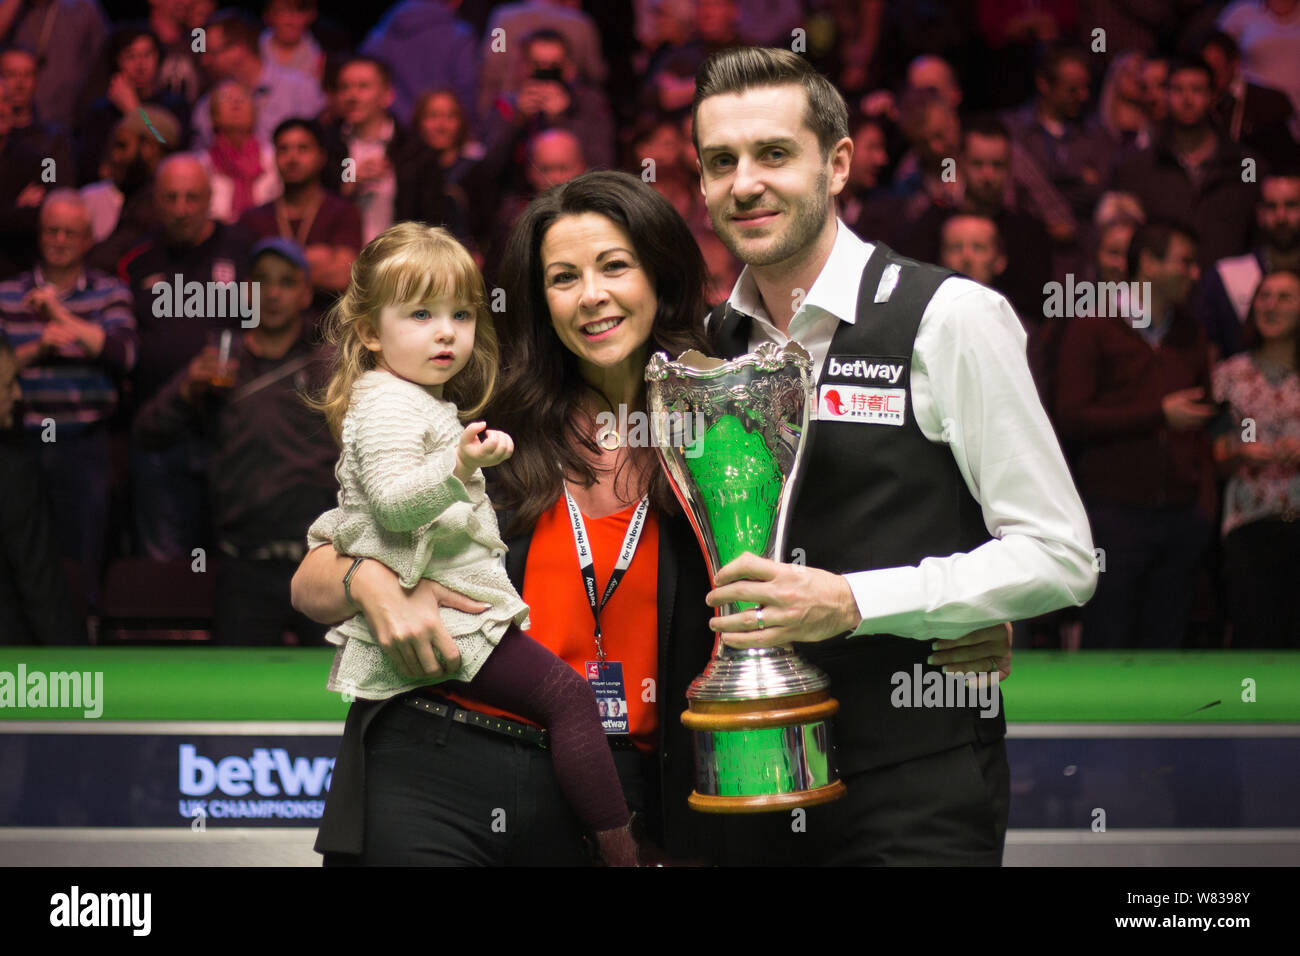 Mark Selby of England, right, poses with his family and champion ...